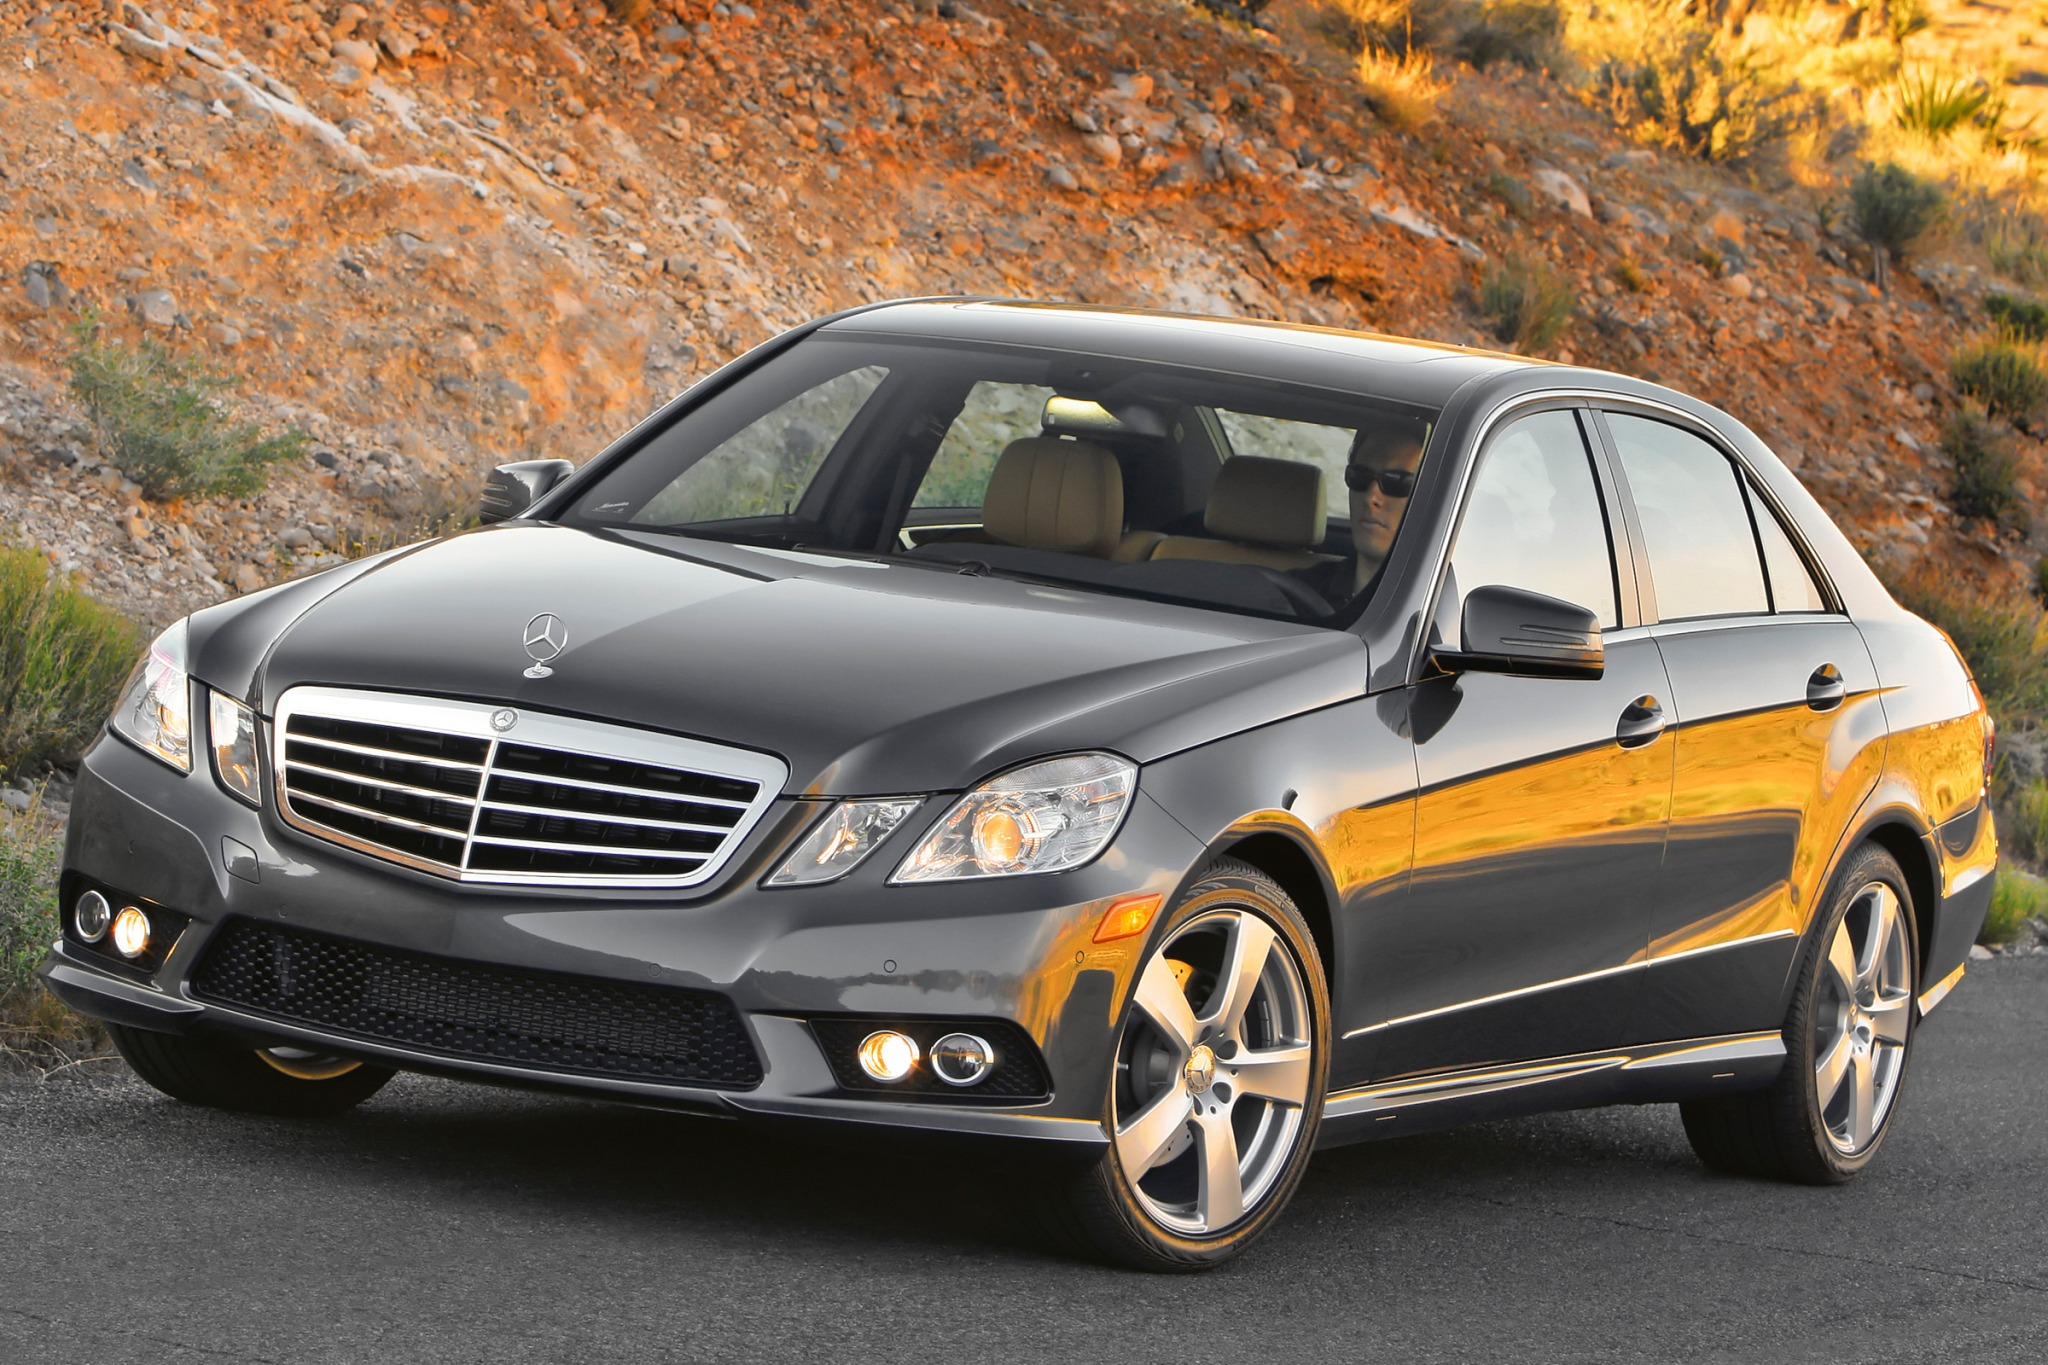 2010 mercedes benz e class image 9 for 2010 mercedes benz e350 sedan